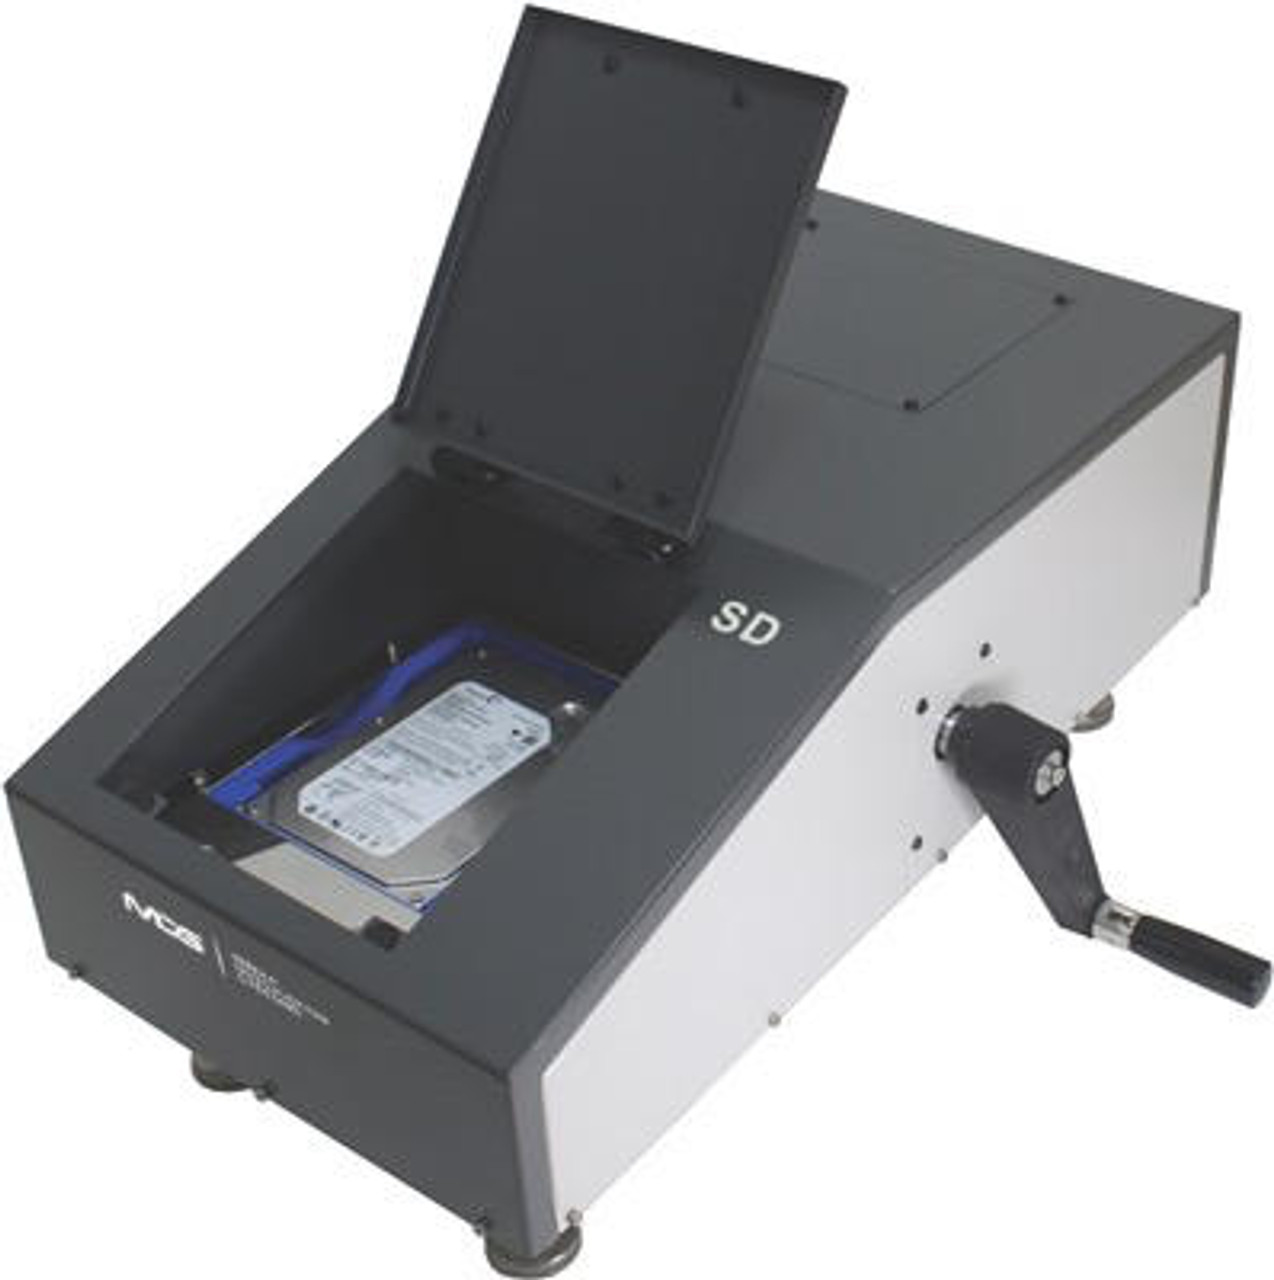 SD-1 Mobile Hard Drive and Tape Degausser - wipes data/renders HDDs permanently unusable